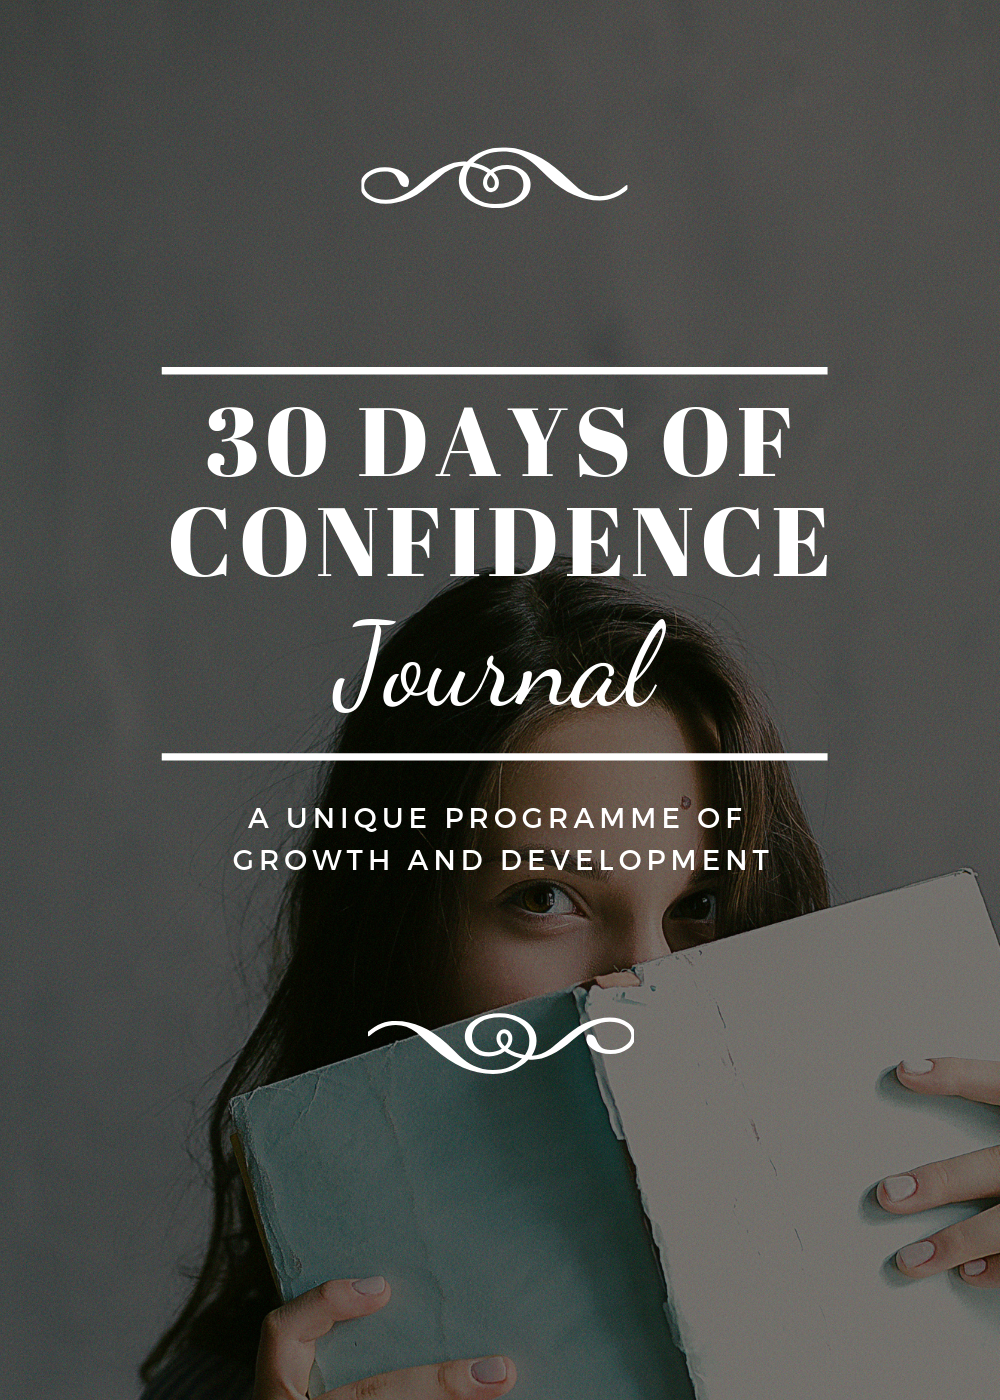 30 Days of Confidence Book Cover 1.png